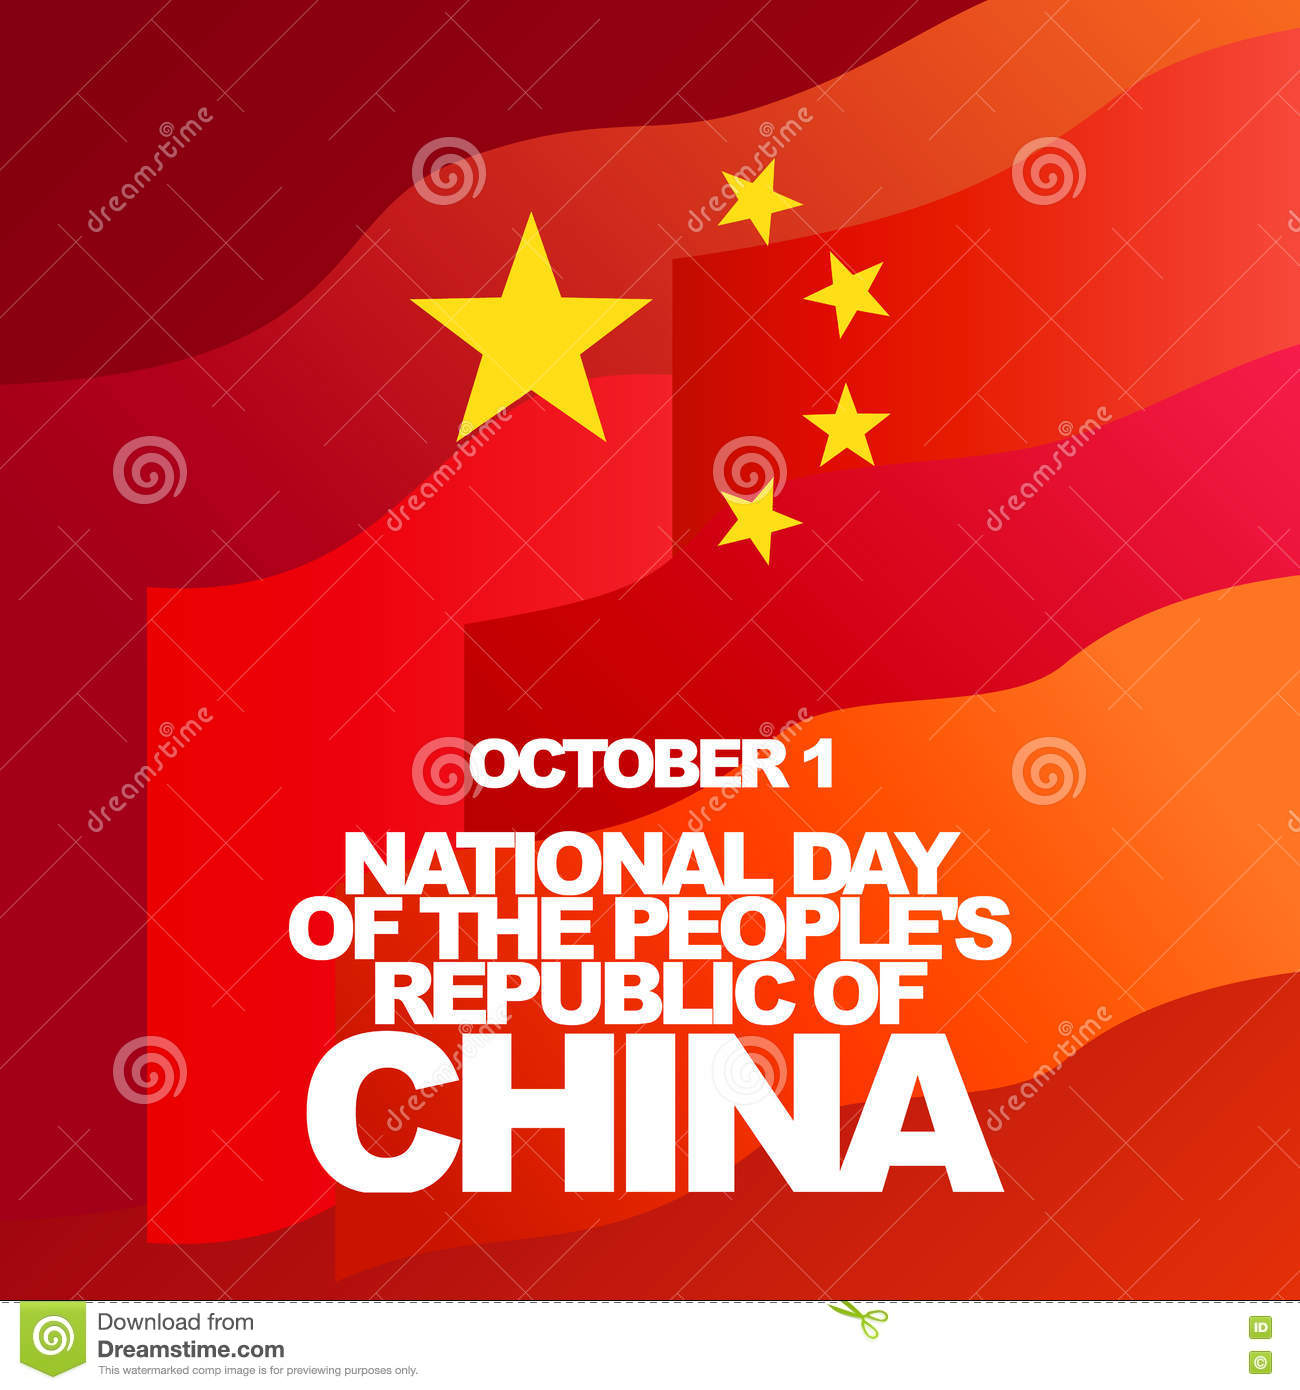 China National Day Design Cartoon Vector | CartoonDealer ...